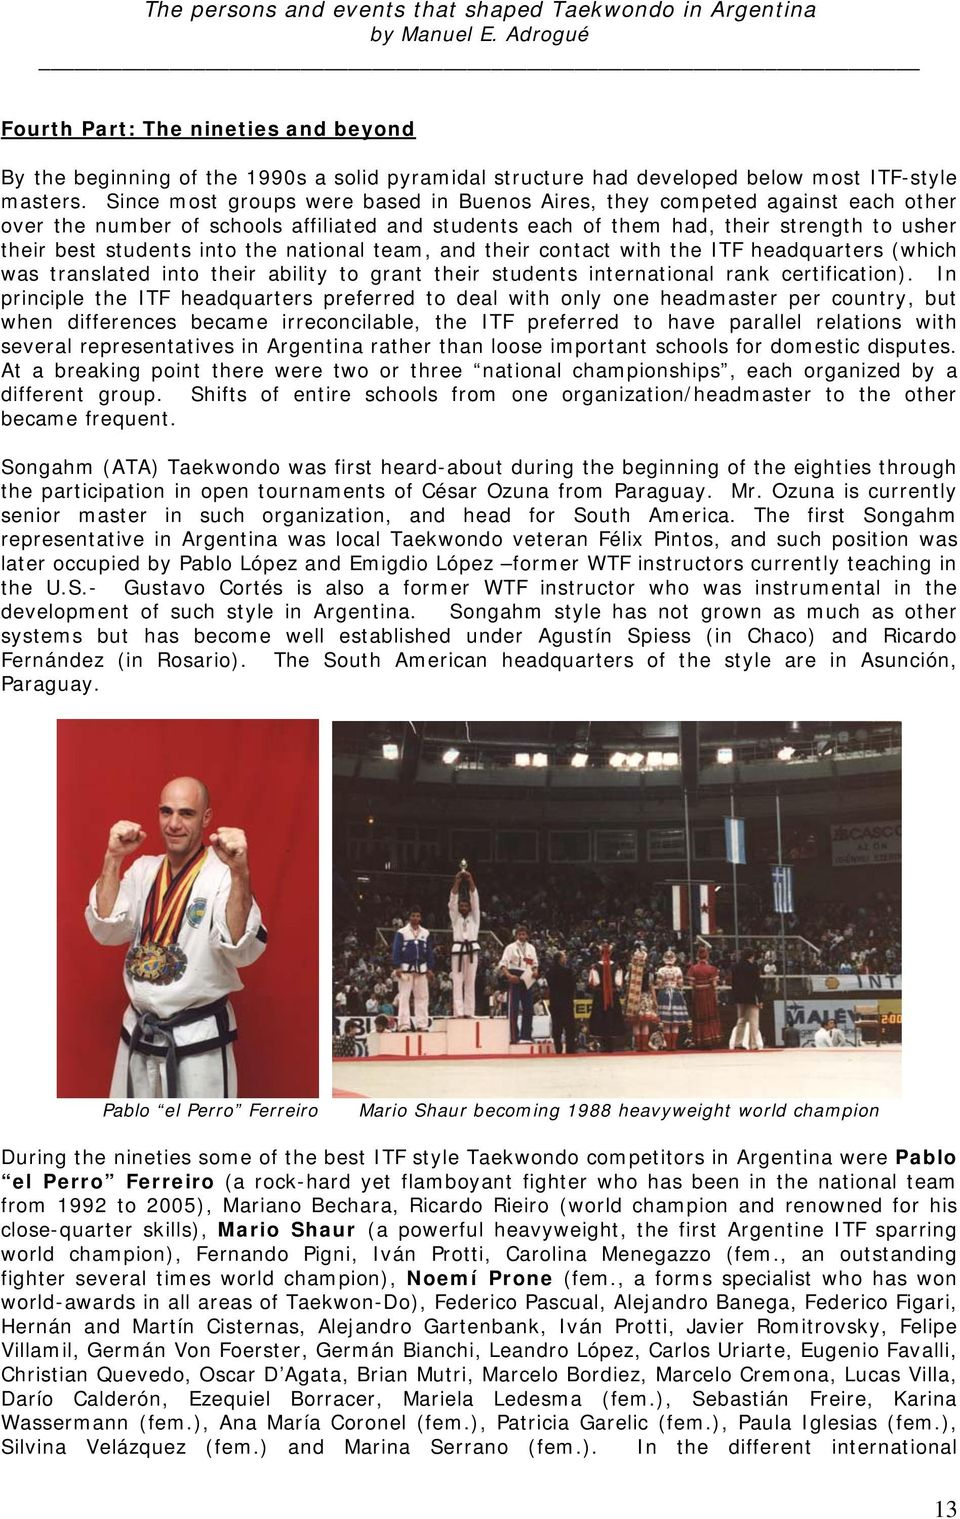 The persons and events that shaped Taekwondo in Argentina By Manuel